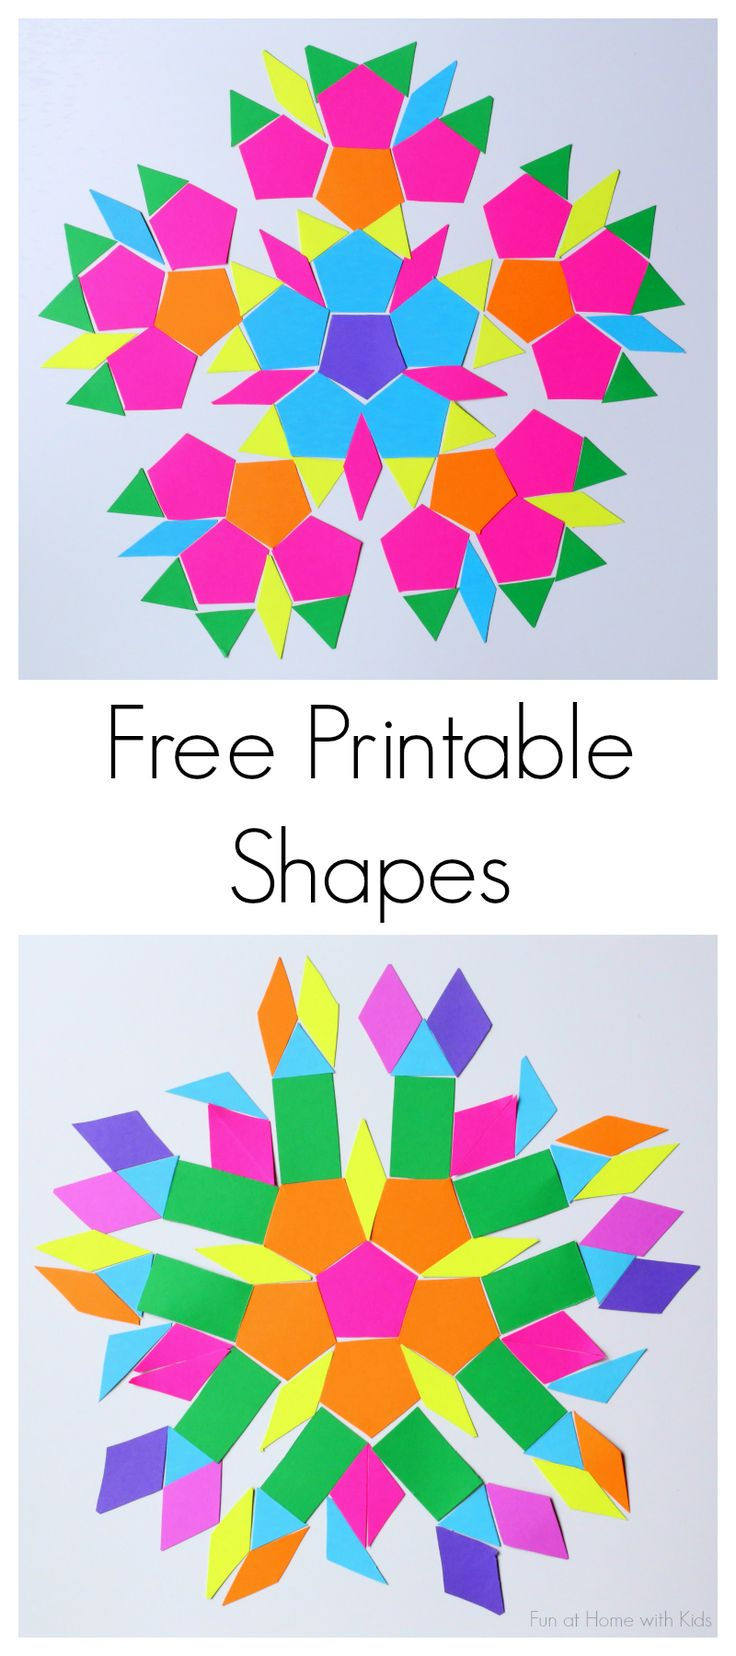 Free Printable Shapes sheet.  An easy DIY Travel Kit to put together to keep kids entertained and learning on the go this summer!  Just print the sheets on some brightly colored @astrobrights paper and pop the shapes in a sealable bag in your purse or diaper bag and you're all set!  #colorize